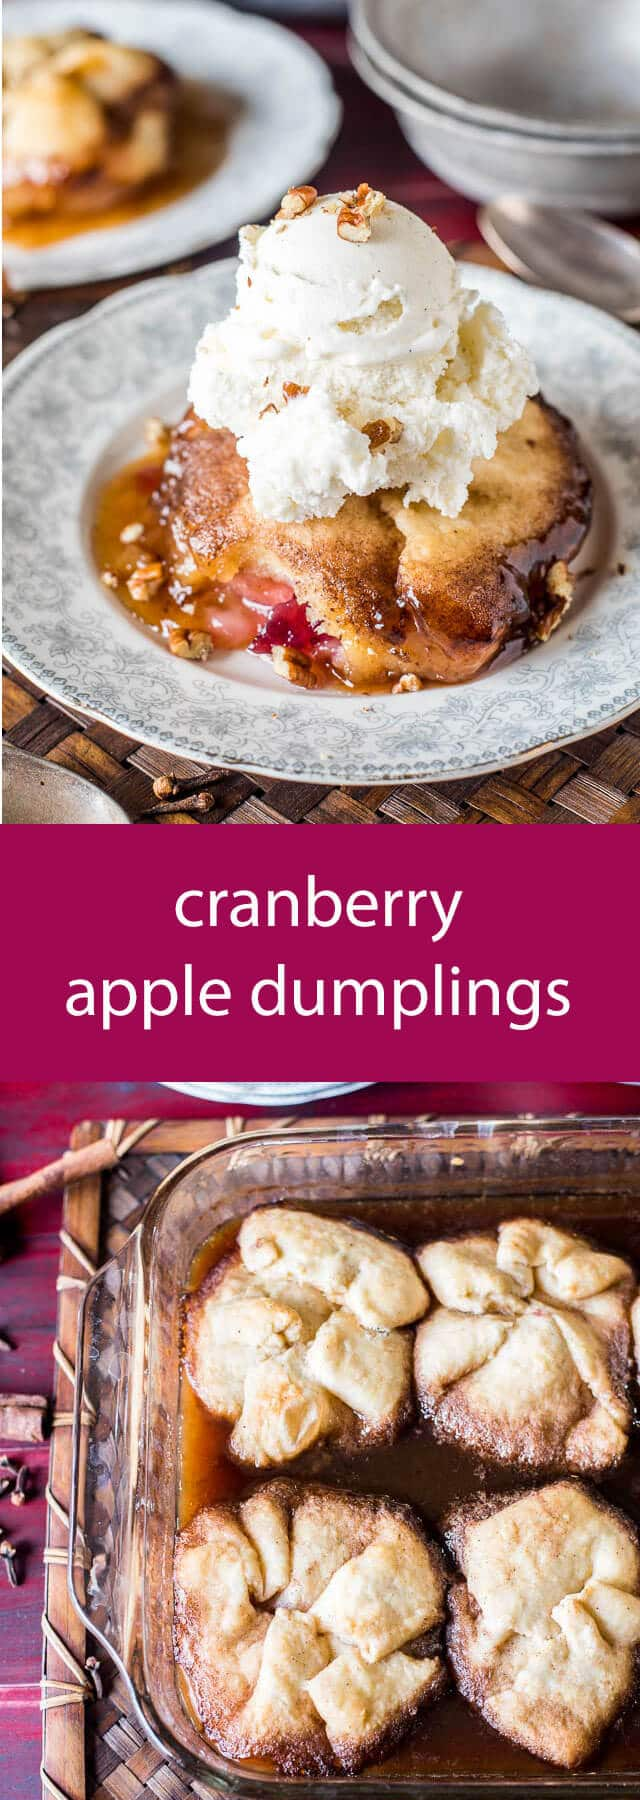 Whole cranberry sauce gives traditional apple dumplings a holiday tanginess. Serve these Amish Cranberry Apple Dumplings with a scoop of vanilla ice cream on top! A simple dough is wrapped around apple slices and cranberry sauce, then baked in a brown sugar syrup.